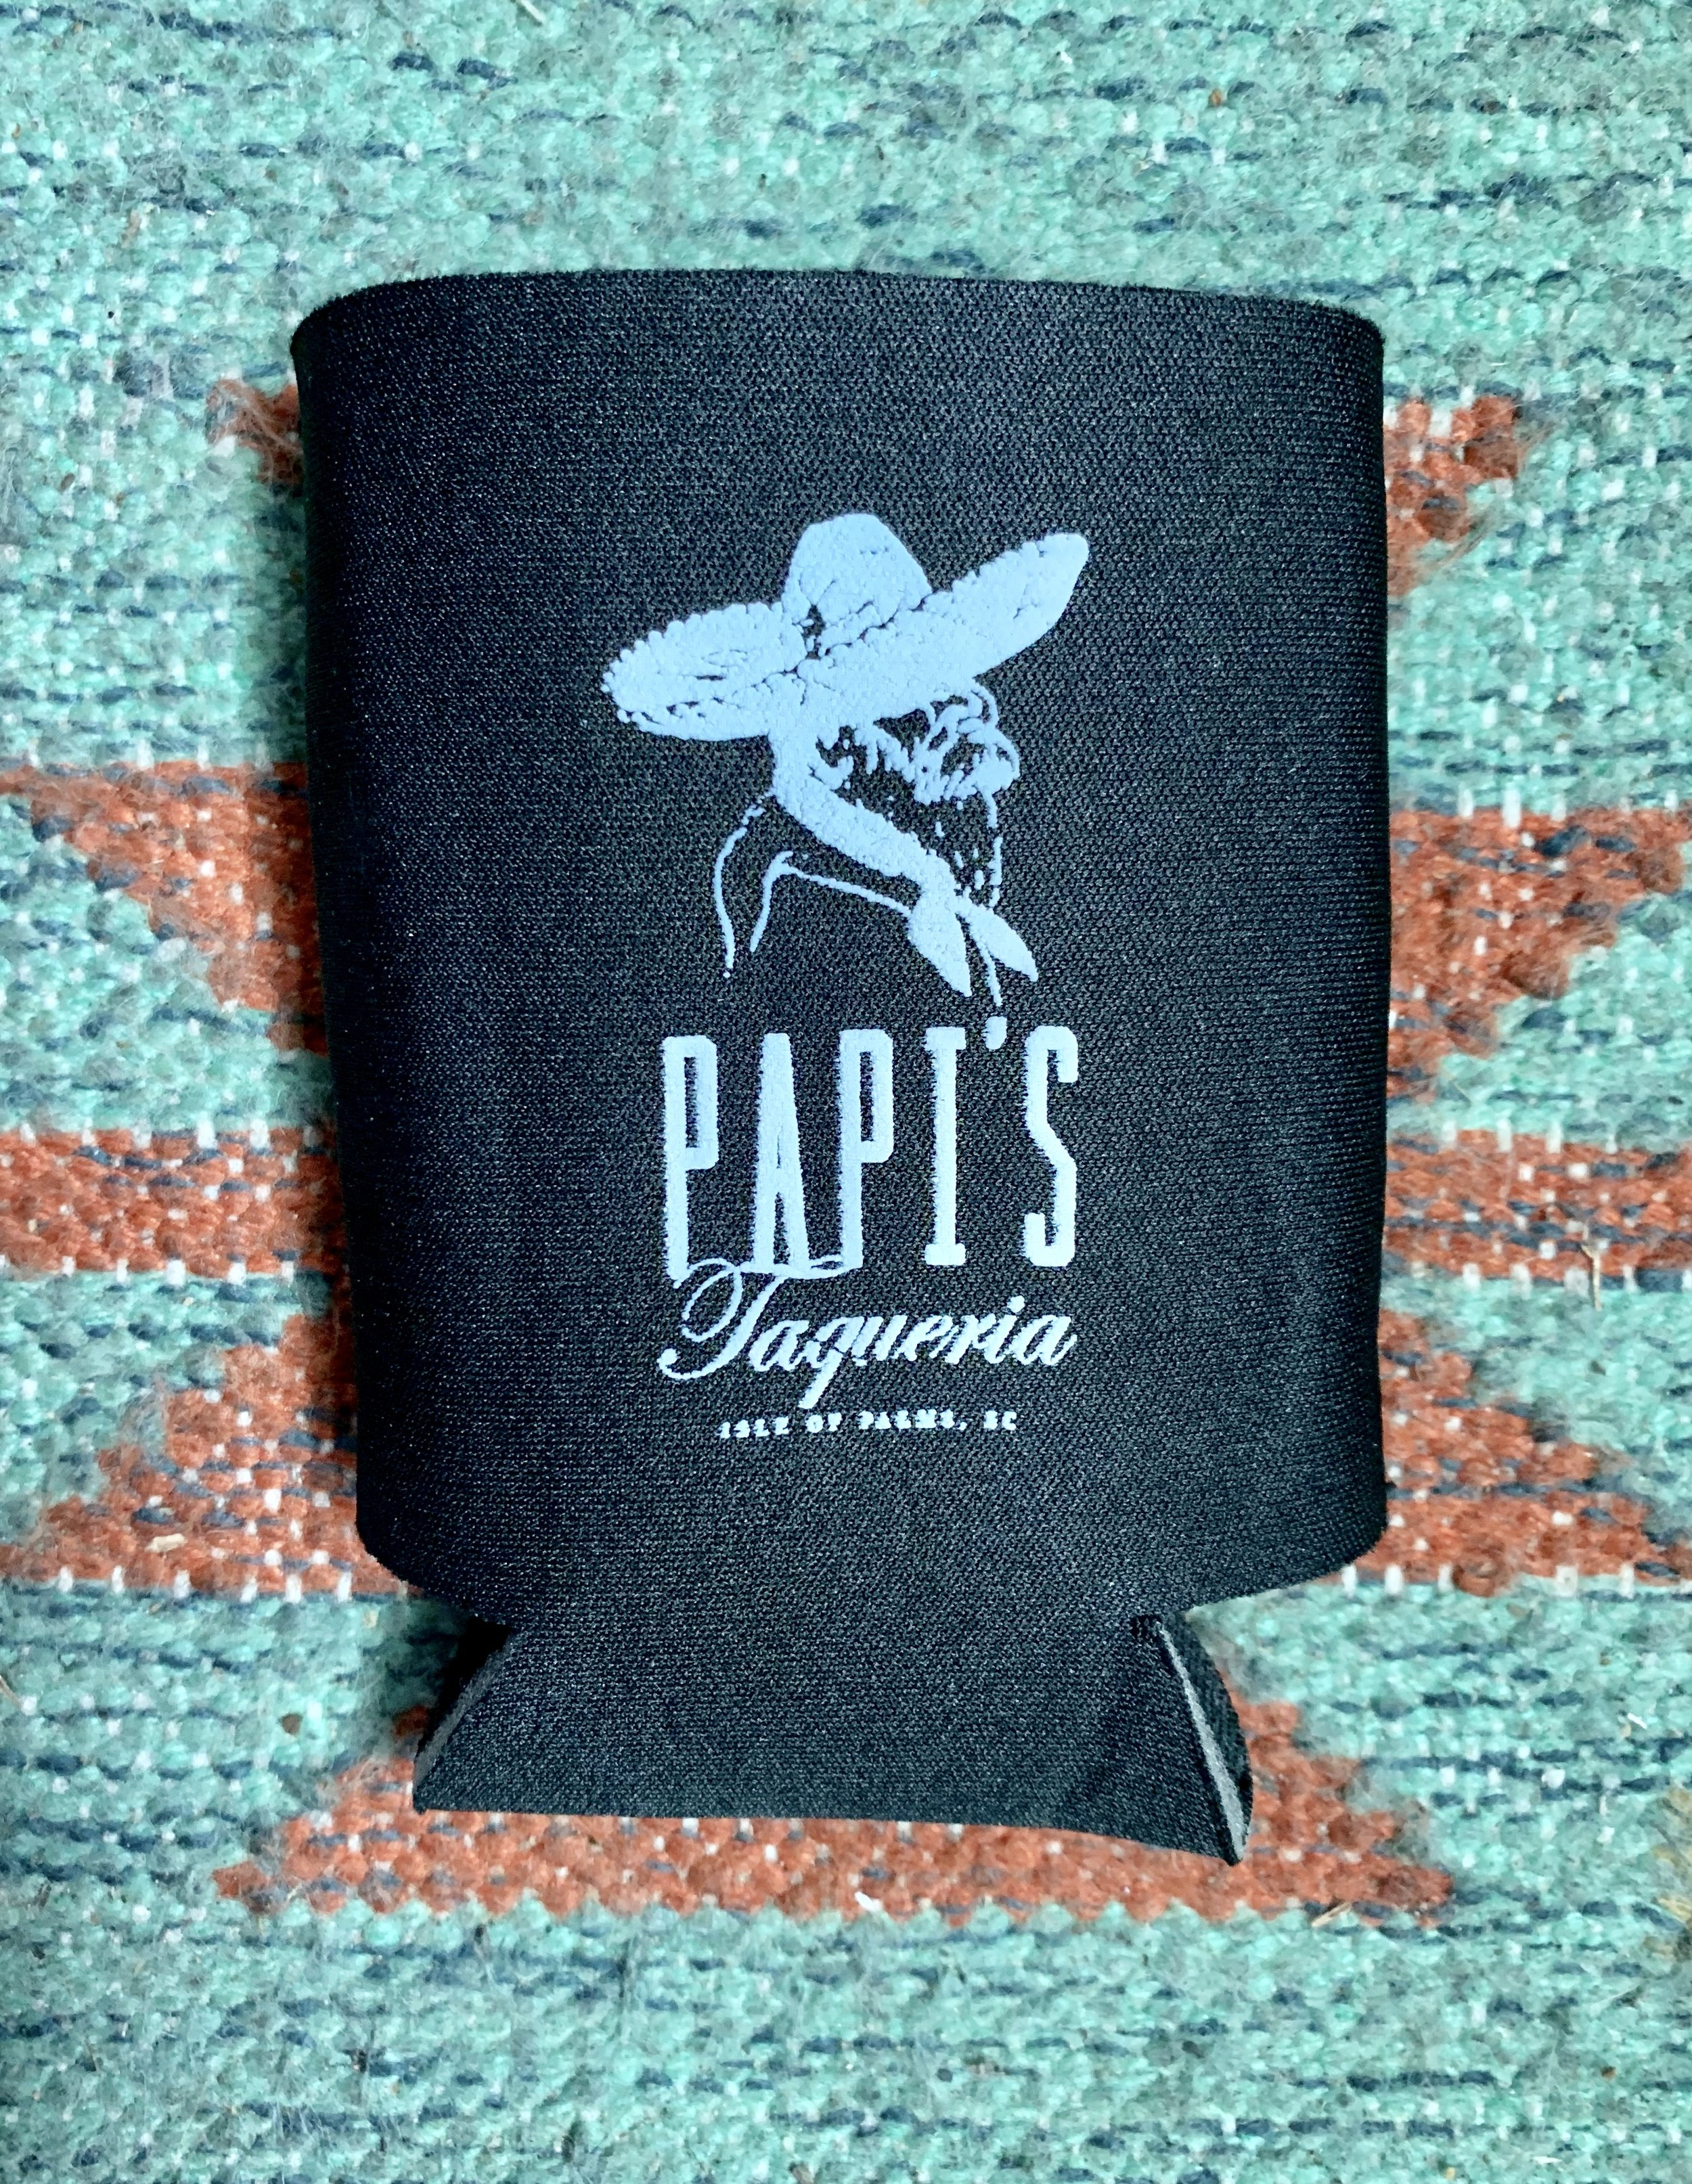 Papi's Coozie $3